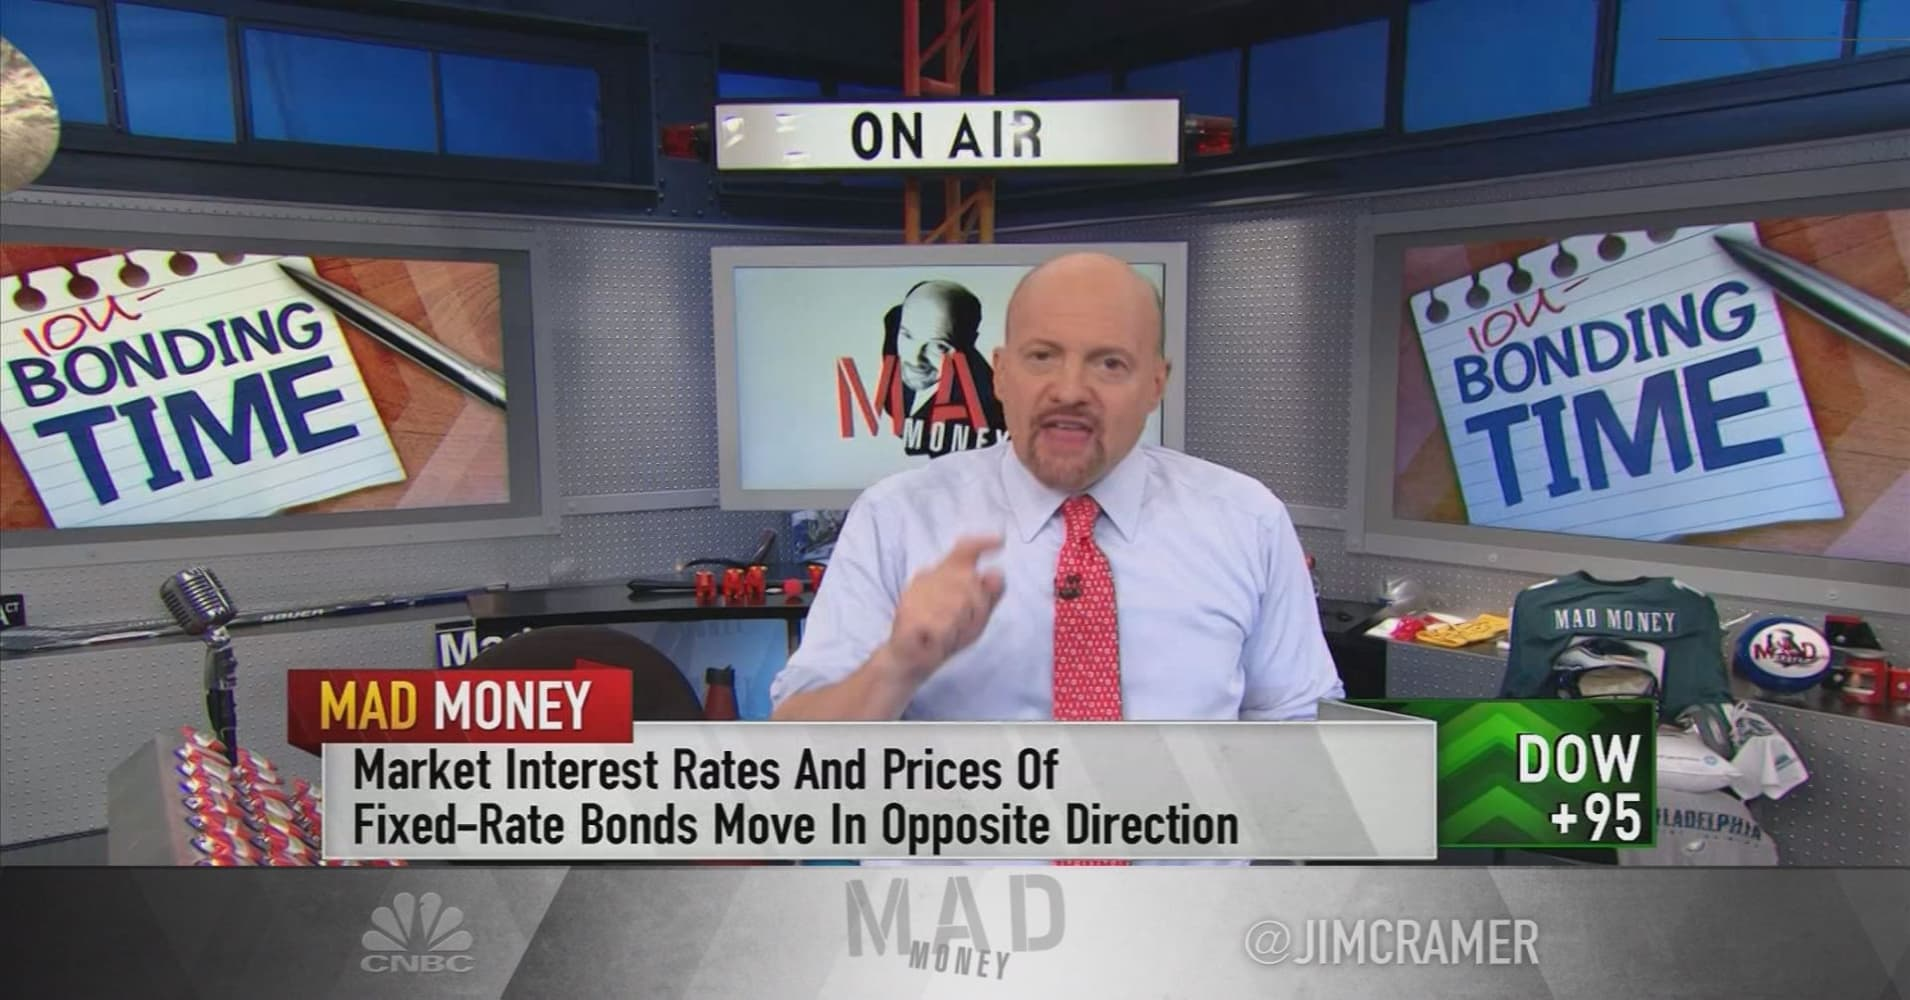 Cramer: To be a good investor, you have to understand bonds